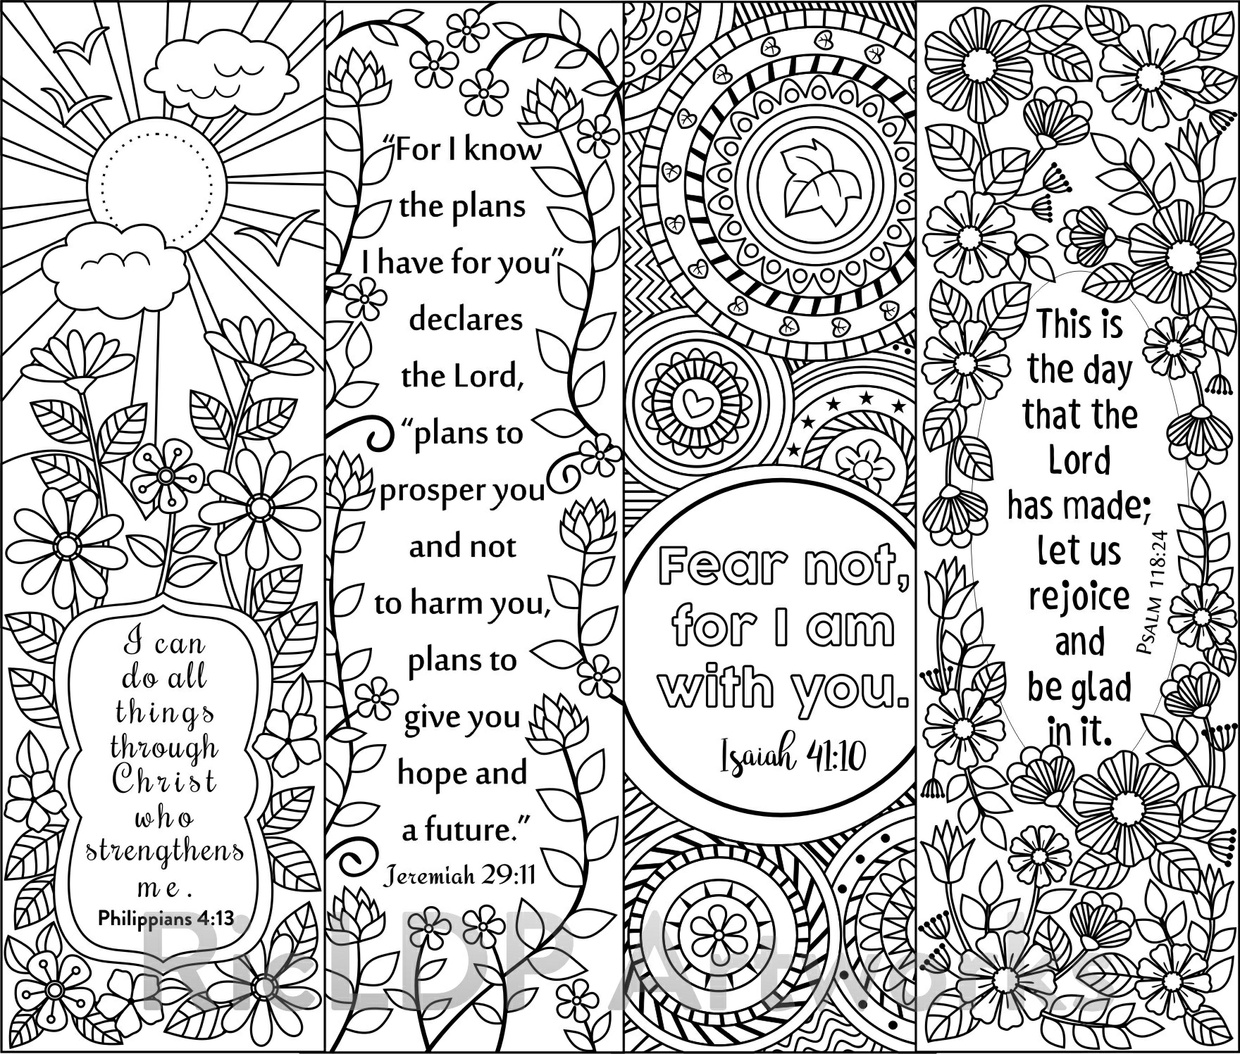 8 Bible Verse Coloring Bookmarks RicLDP Artworks Sellfy.com